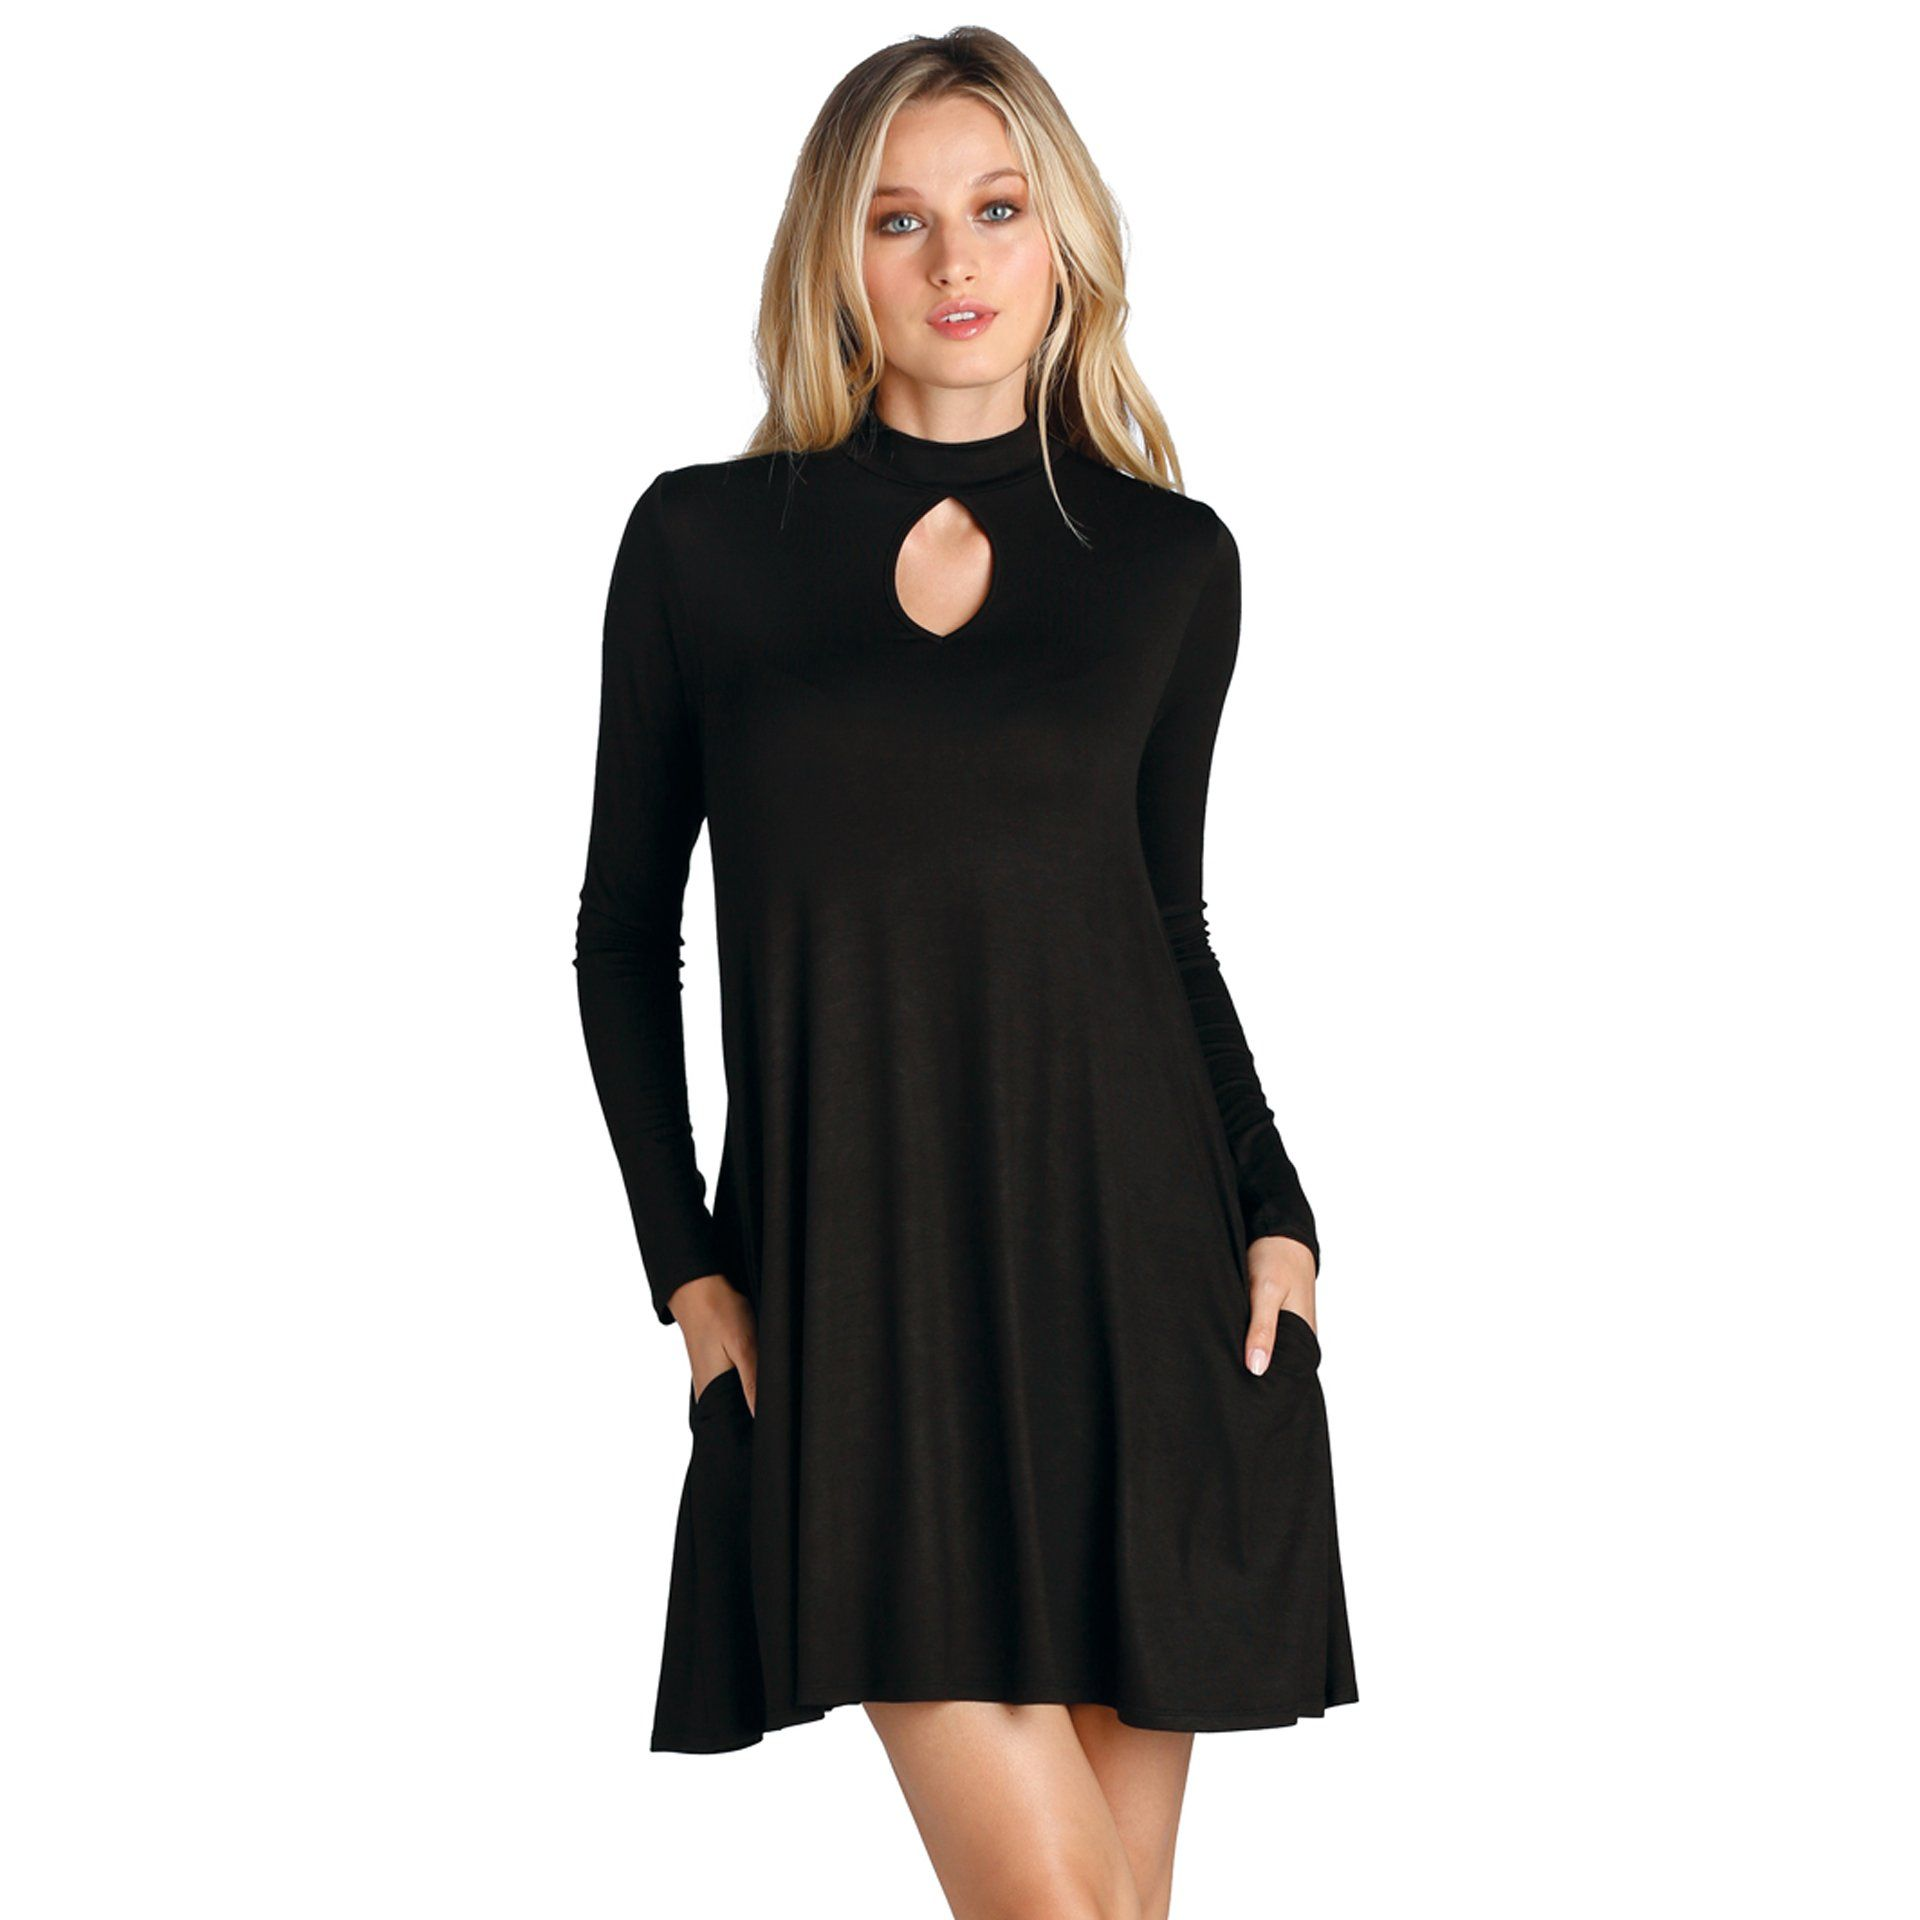 Dress with Small Keyhole in Black - Arlo and Arrows